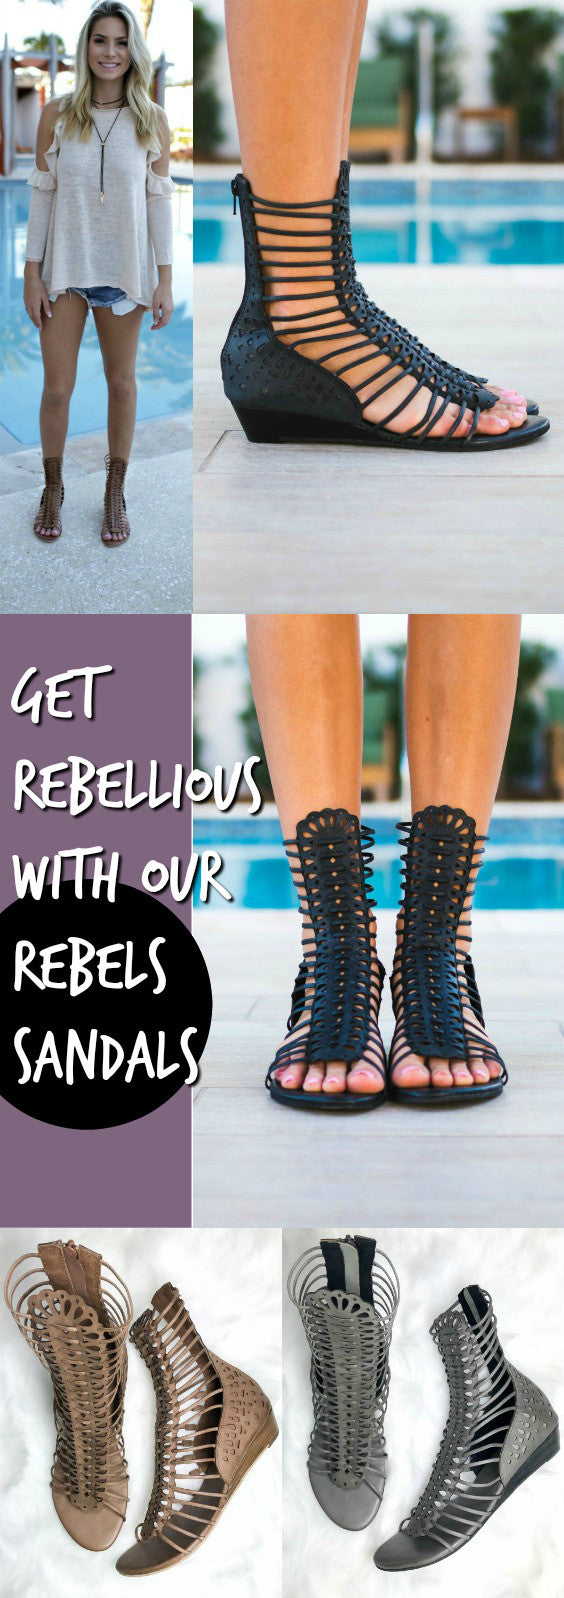 Get Rebellious With Our Rebels Sandals